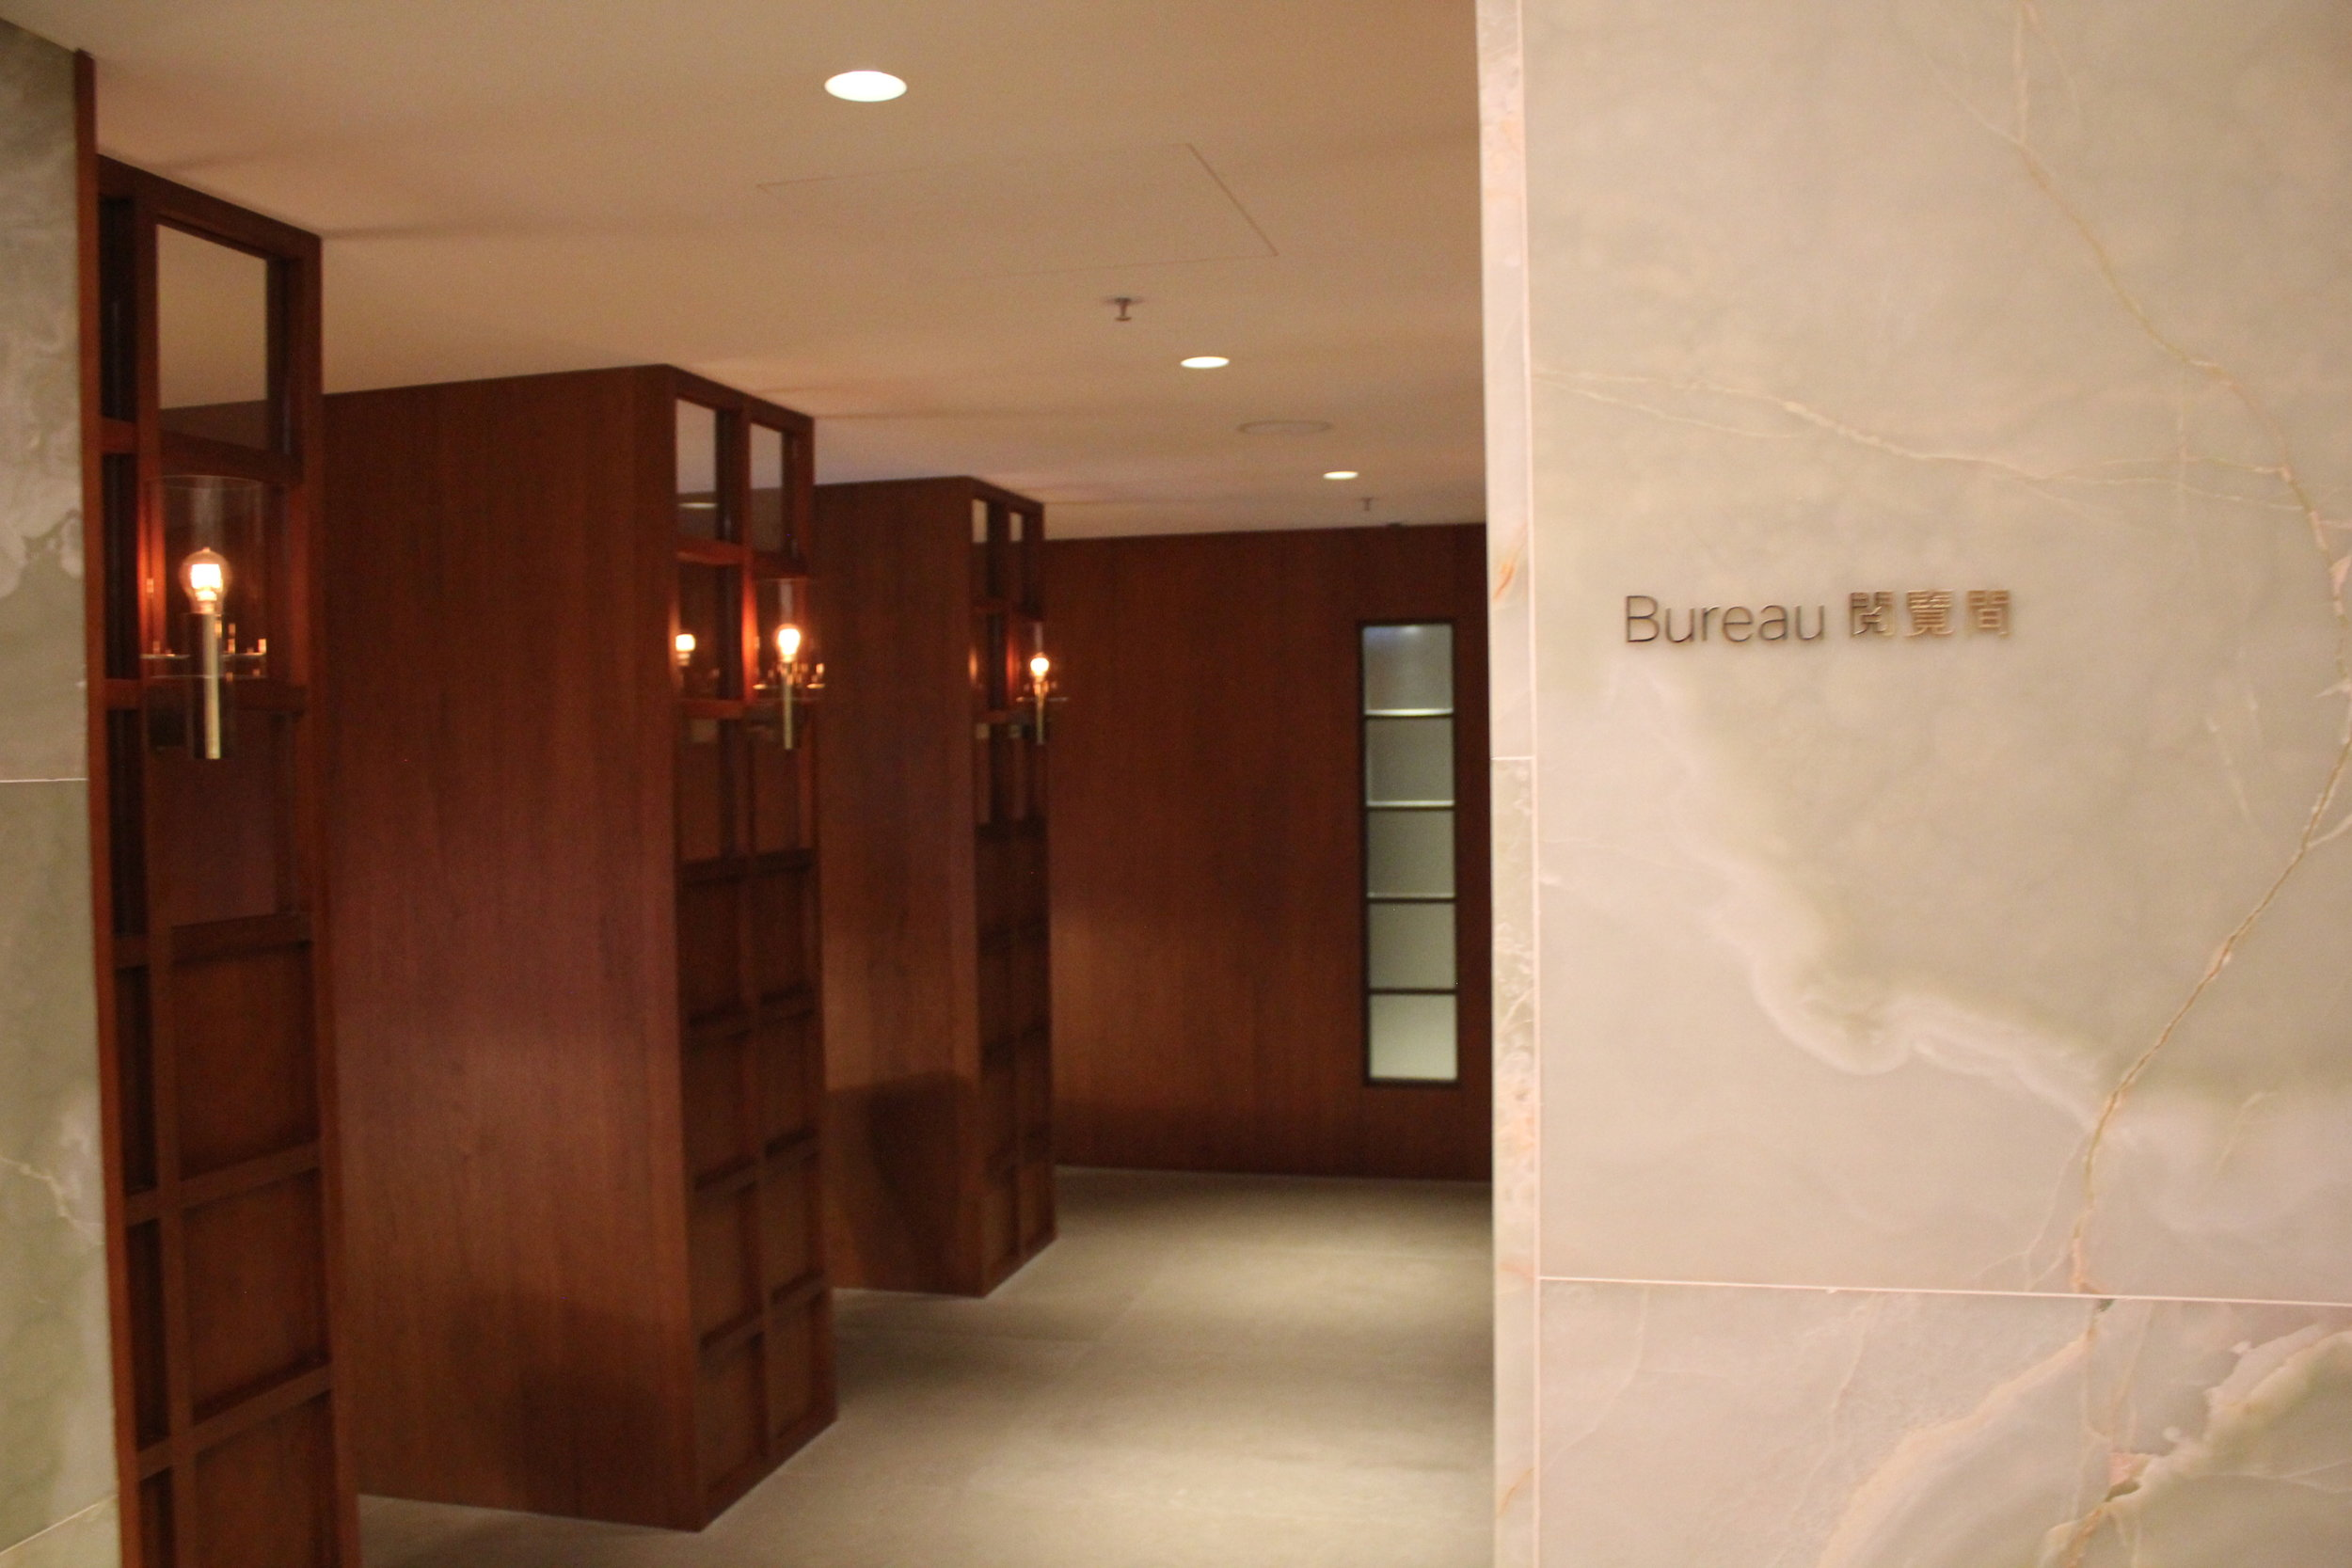 The Pier First Class Lounge by Cathay Pacific – The Bureau